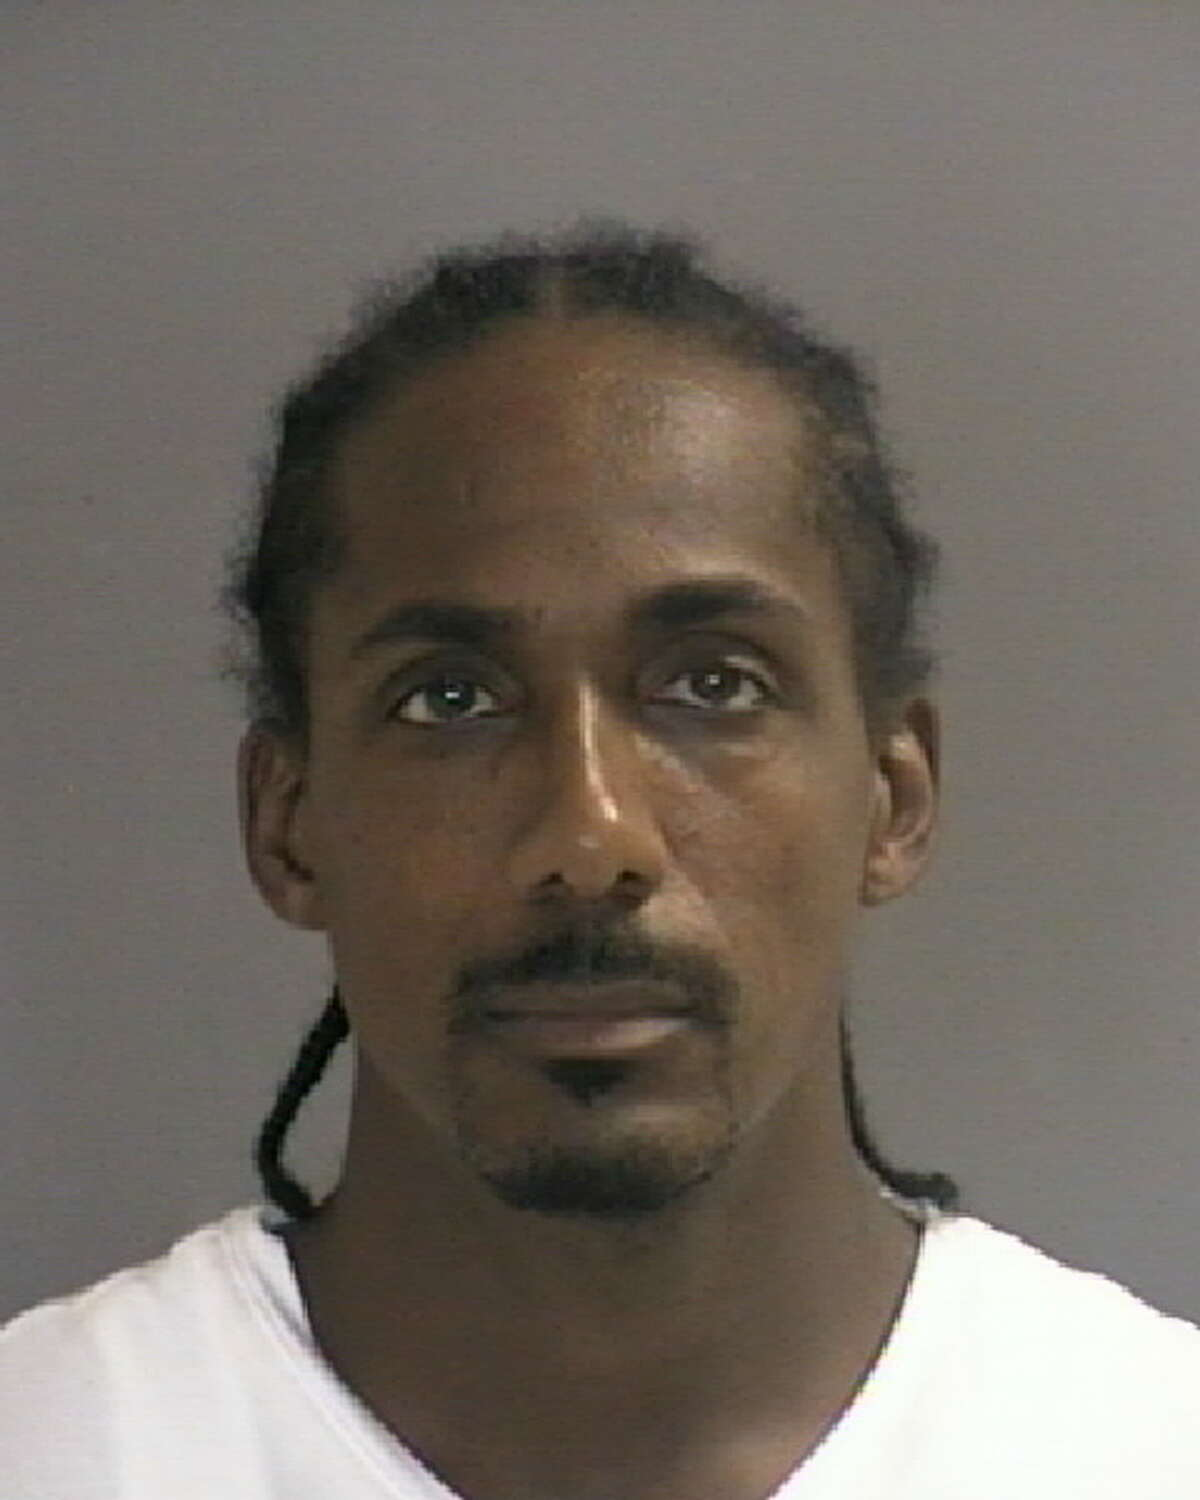 Carl Lumpkin, 39, of Albany. (Colonie Police Department)